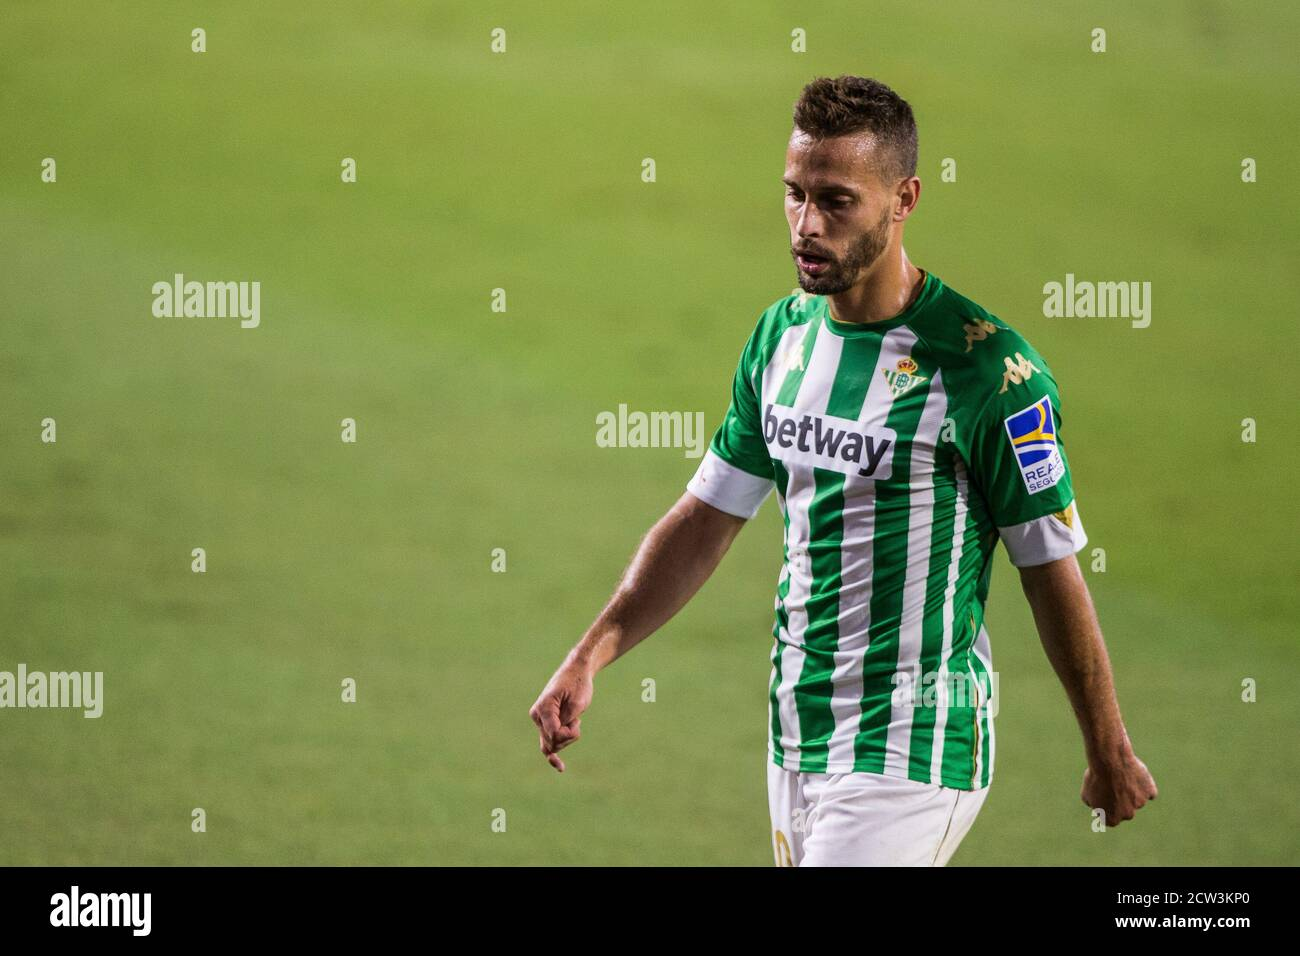 Sergio Canales of Real Betis during the Spanish championship La Liga  football match between Real Betis Balompie and Real Madrid on September 26,  2020 Stock Photo - Alamy